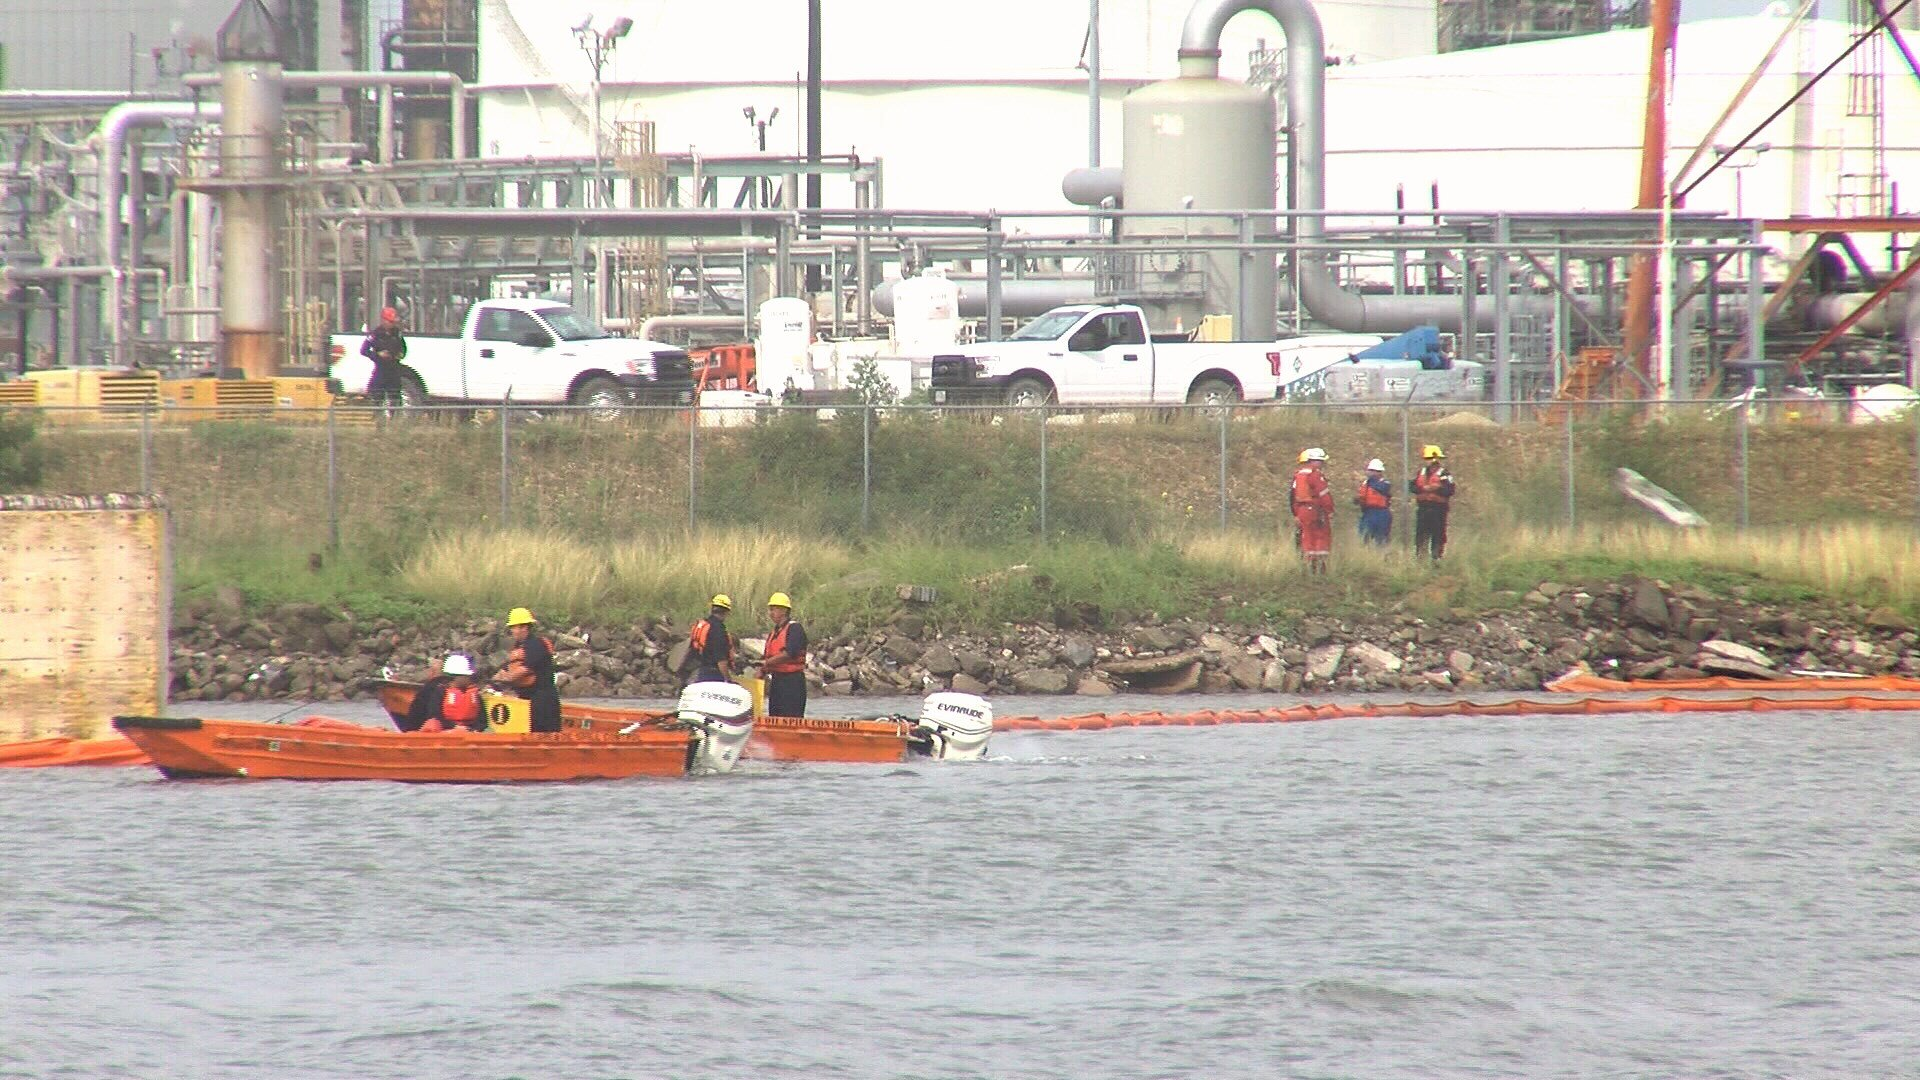 The Refinery Terminal Fire Company, Texas Commiission Environmental Quality and Texas General Land Office have contained an oil sheen in the Corpus Christi Ship Channel Thursday morning.